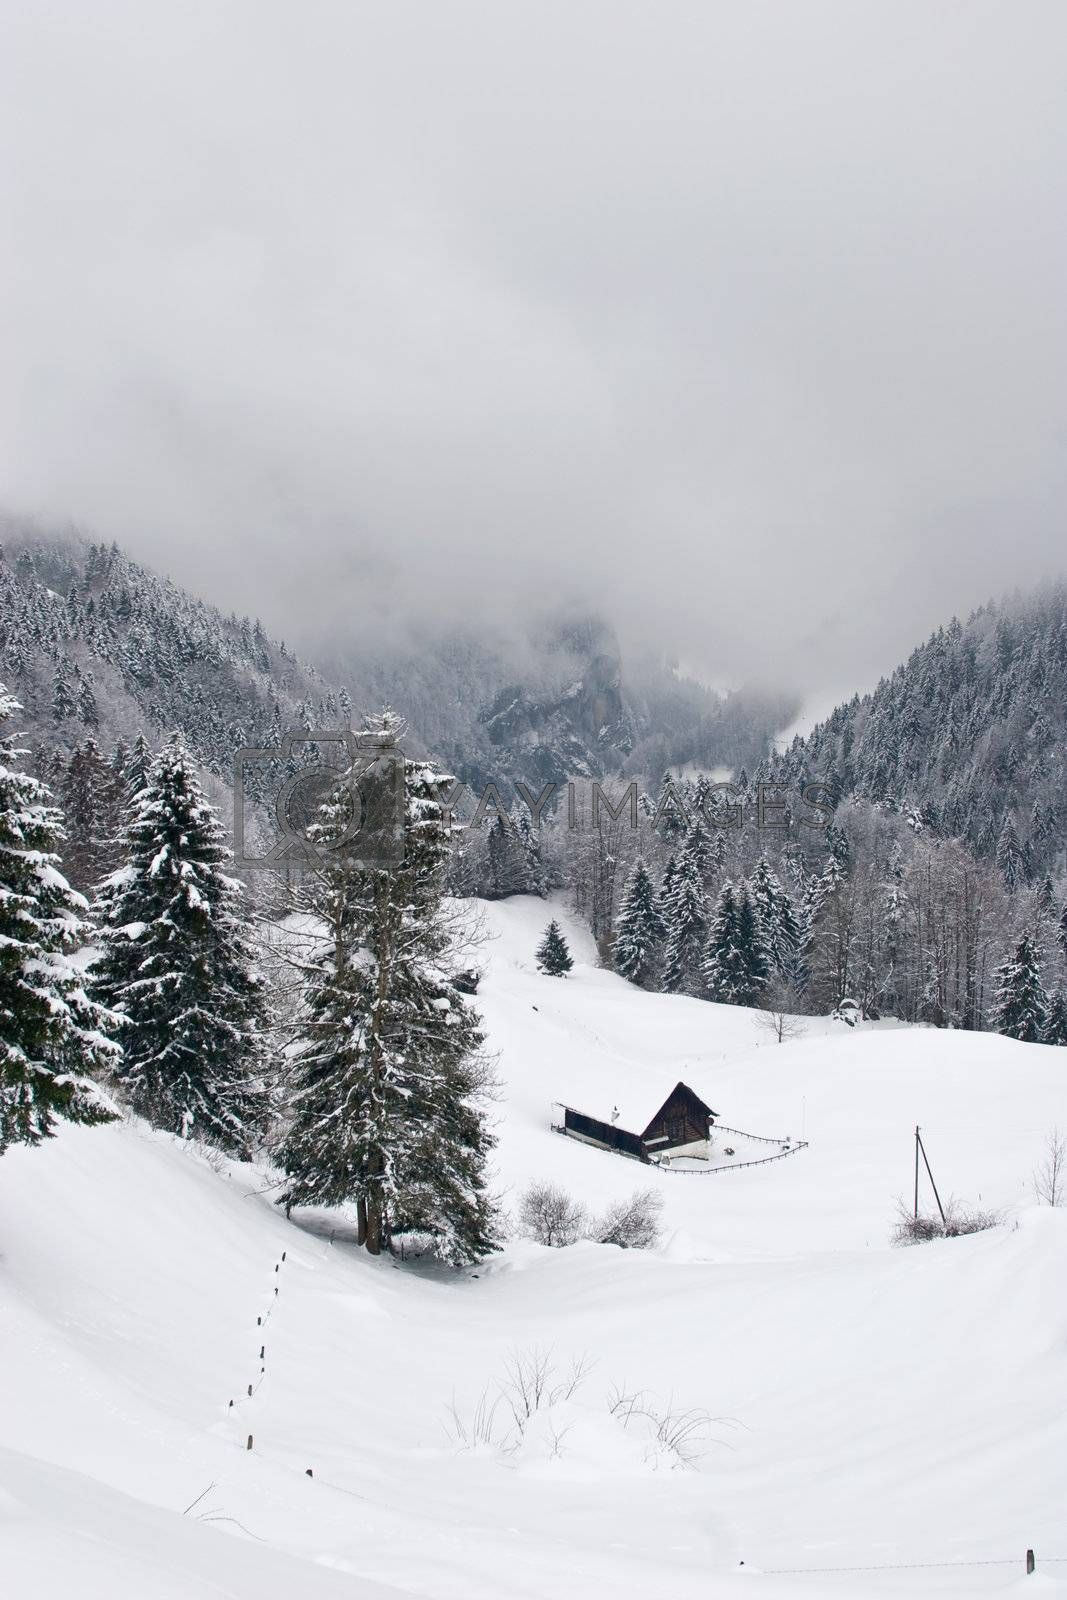 A stormy day in the Swiss alps.